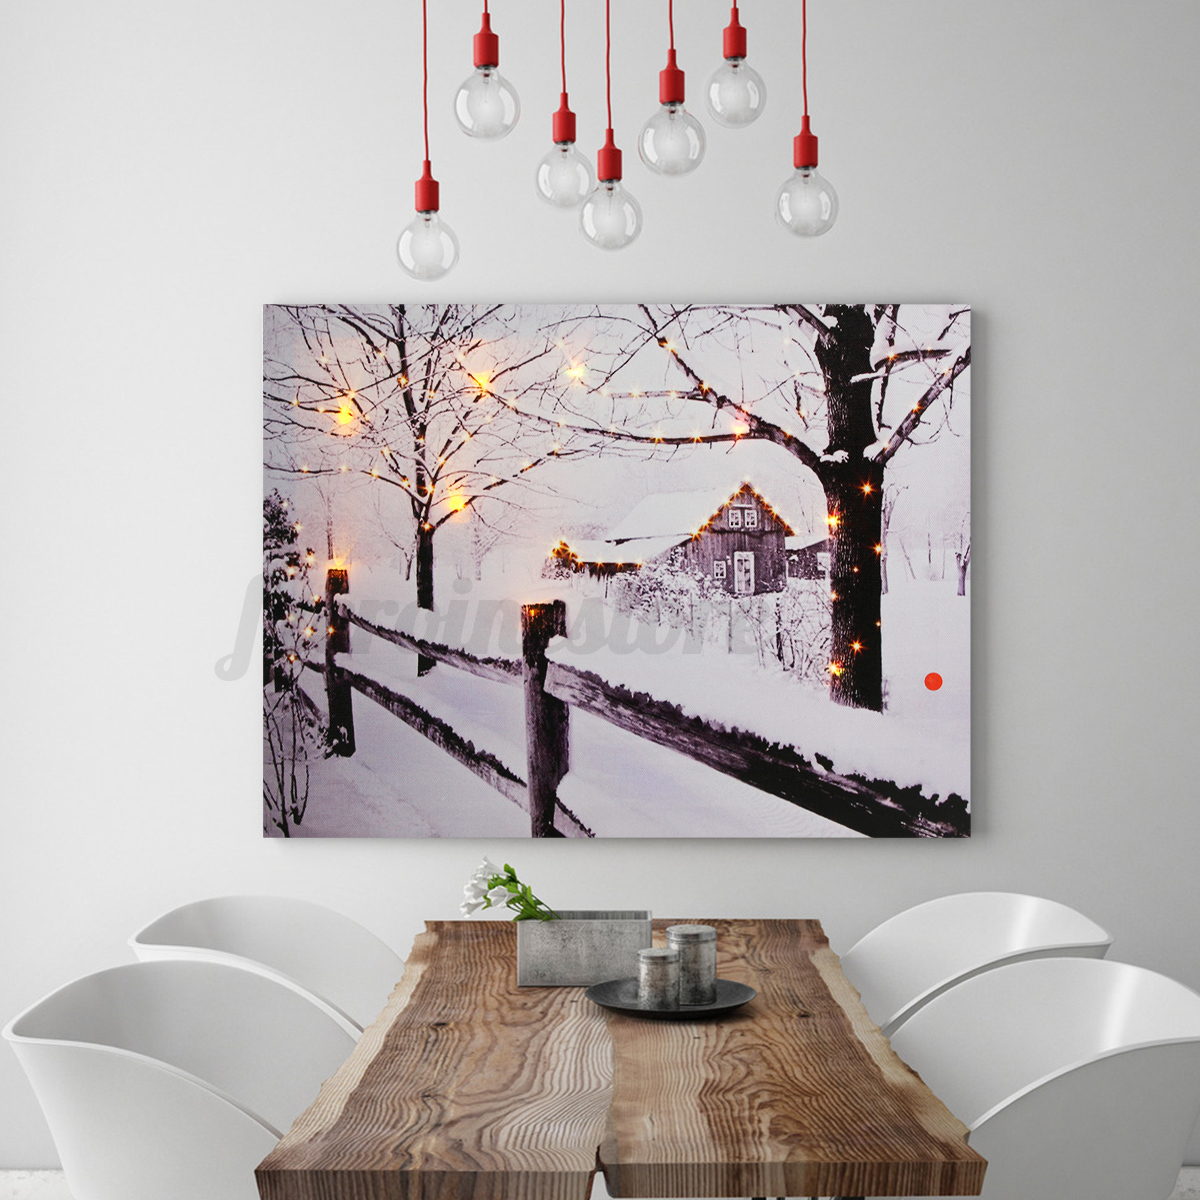 LED Light Up Christmas Reindeer Canvas Print Picture Wall Hanging Decor 30x40cm